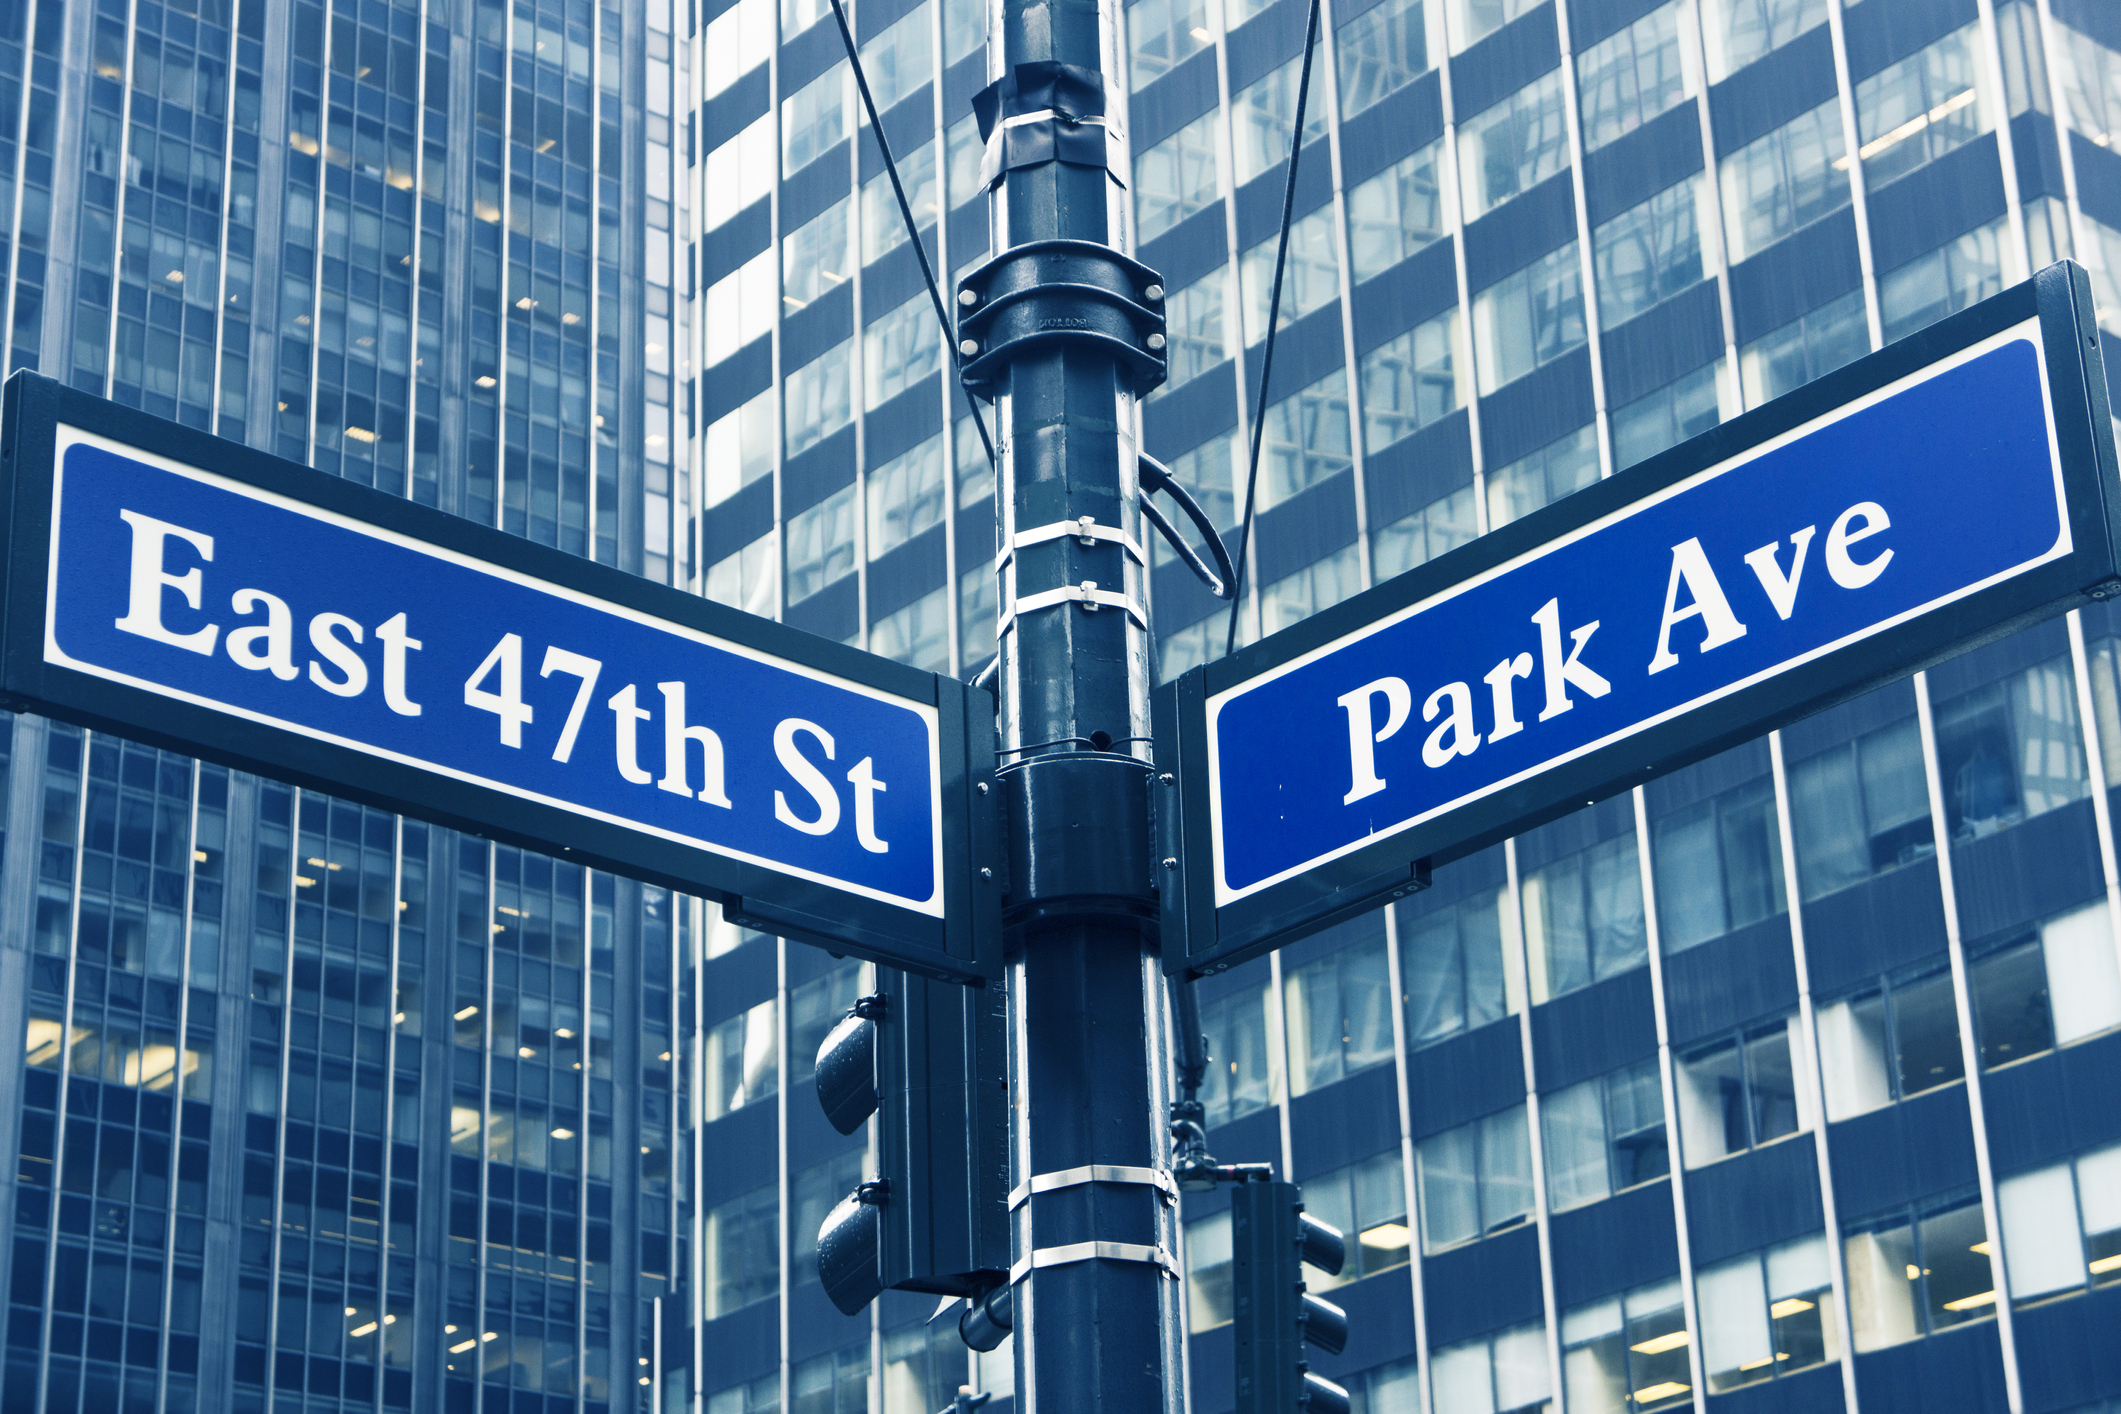 We are located on Park Avenue between 46th and 47th Street